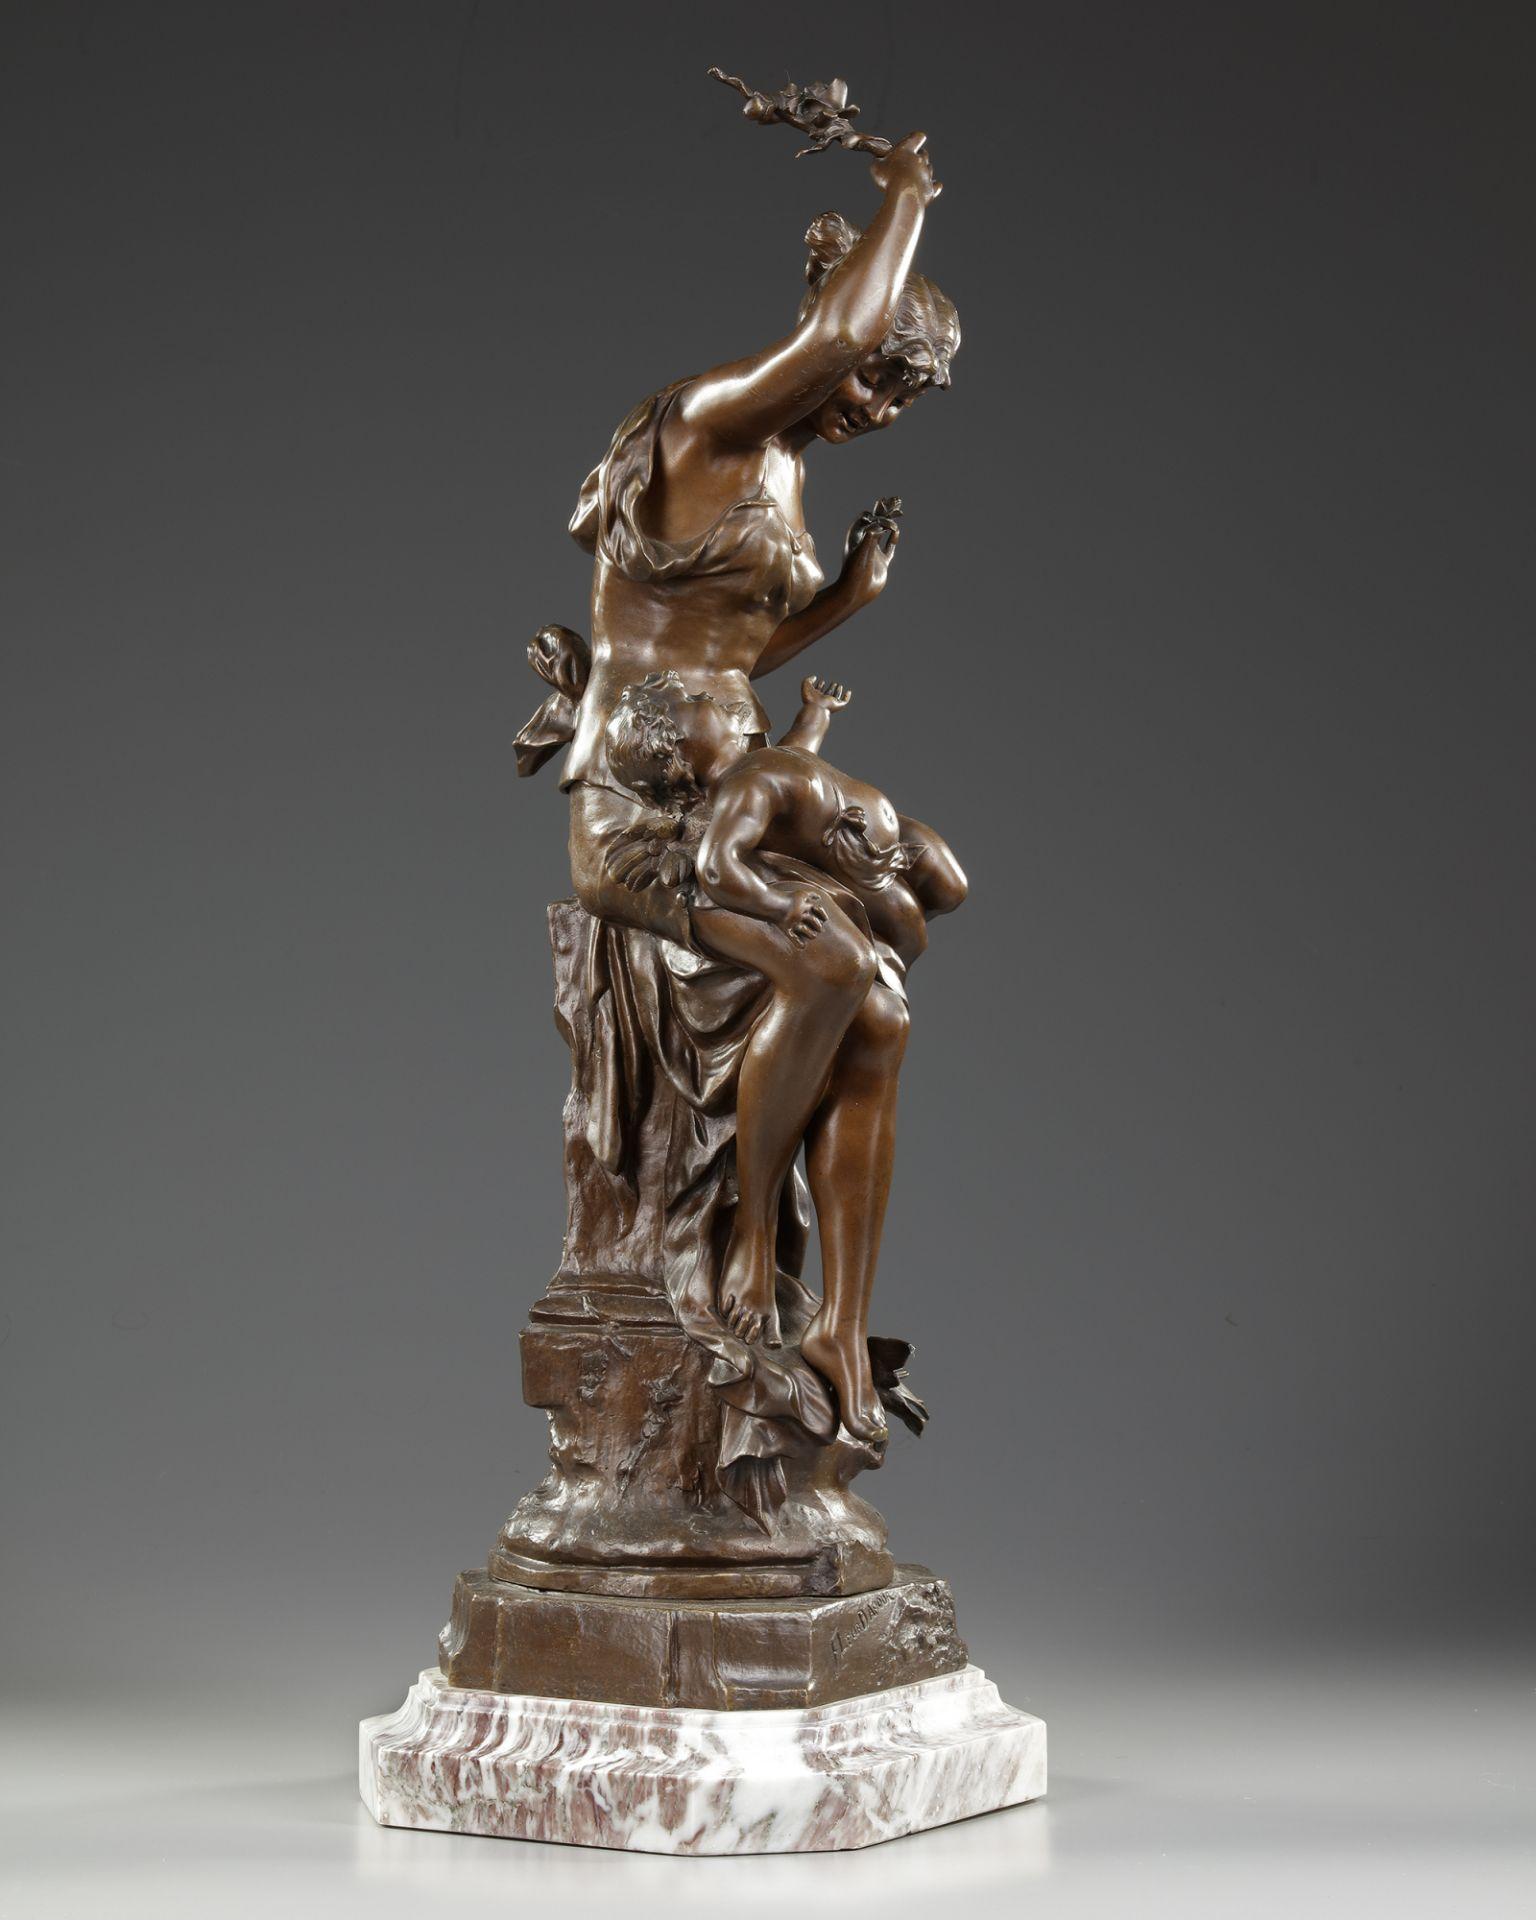 A BRONZE STATUE, AUGUSTE DEWEVER, LATE 19TH CENTURY - Image 3 of 5